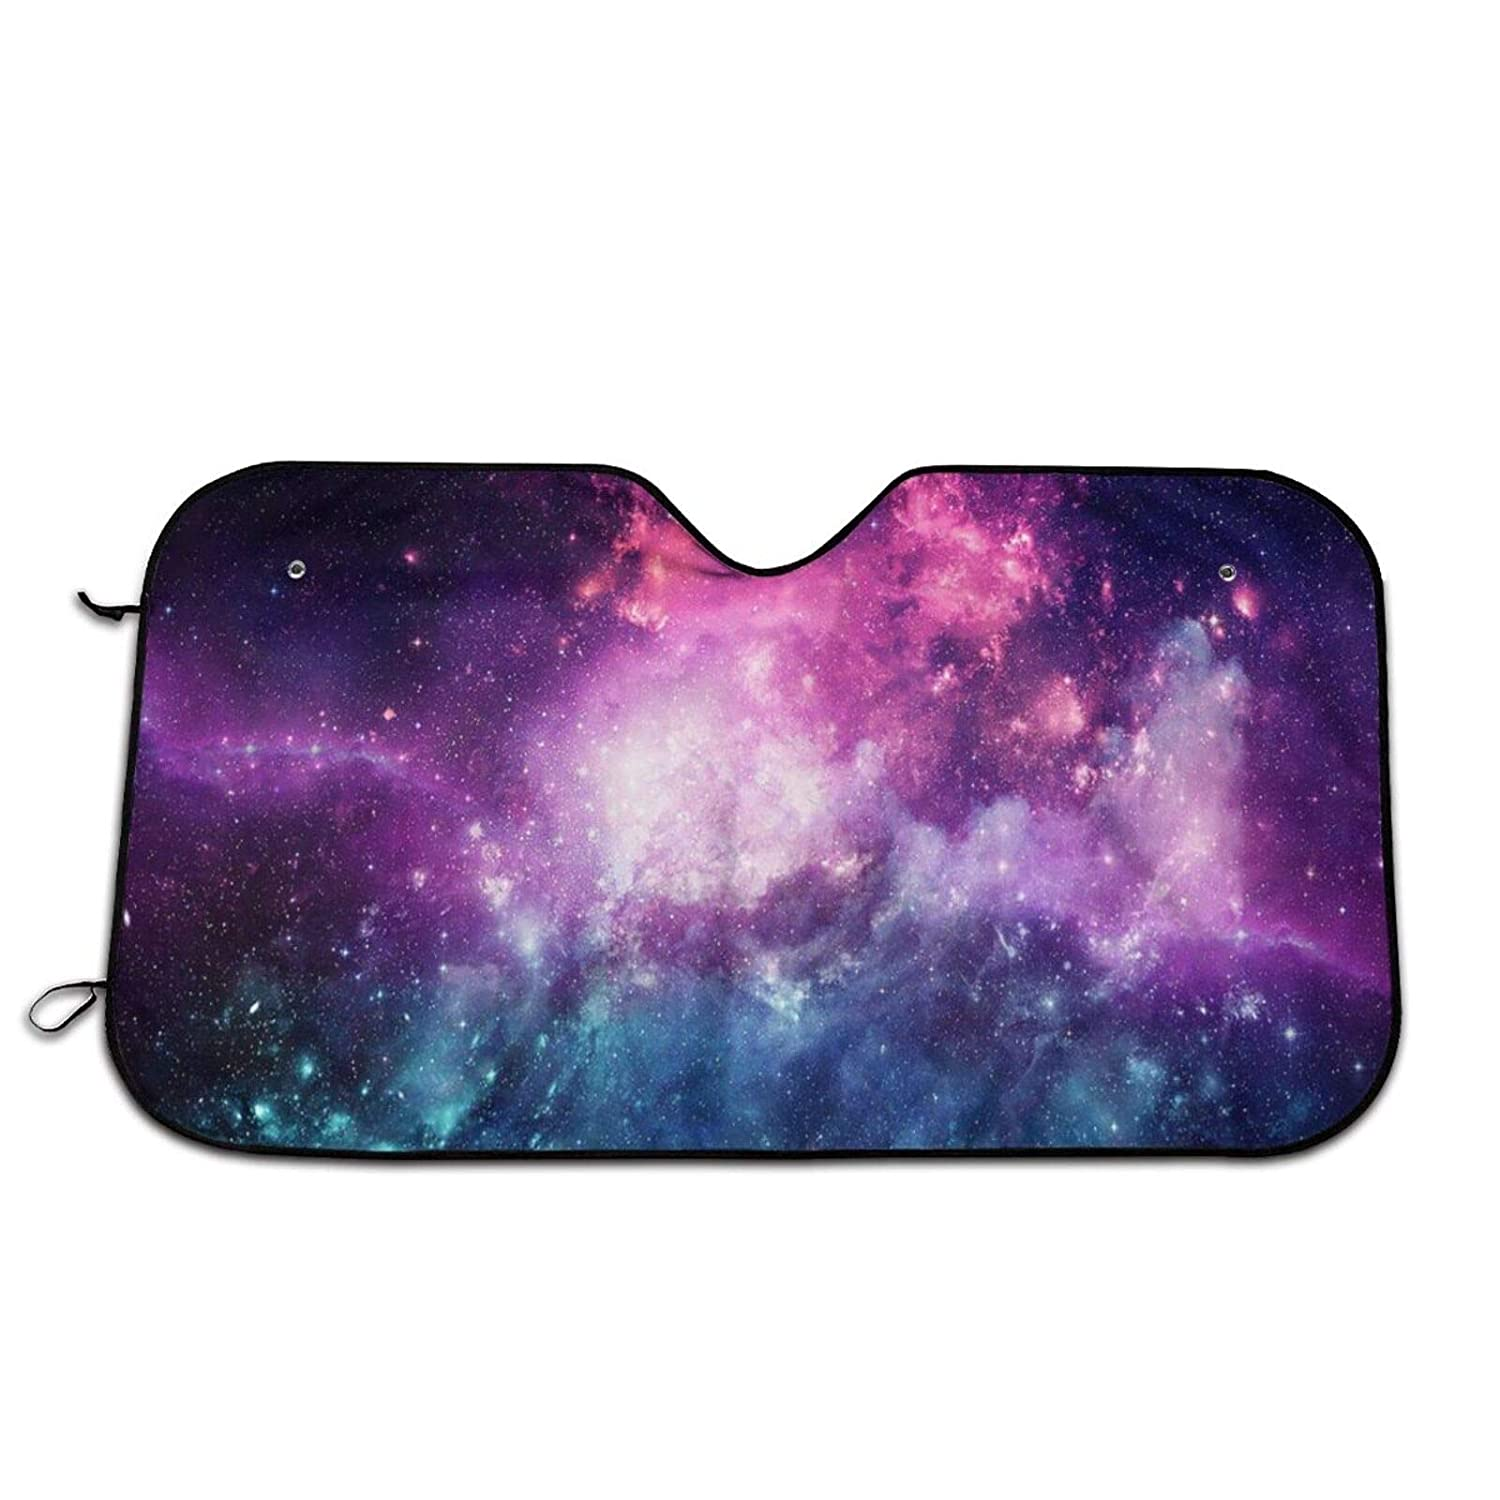 Perfect Universe Filled with Stars Windshield Galaxy and 70% OFF Outlet All stores are sold Nebula